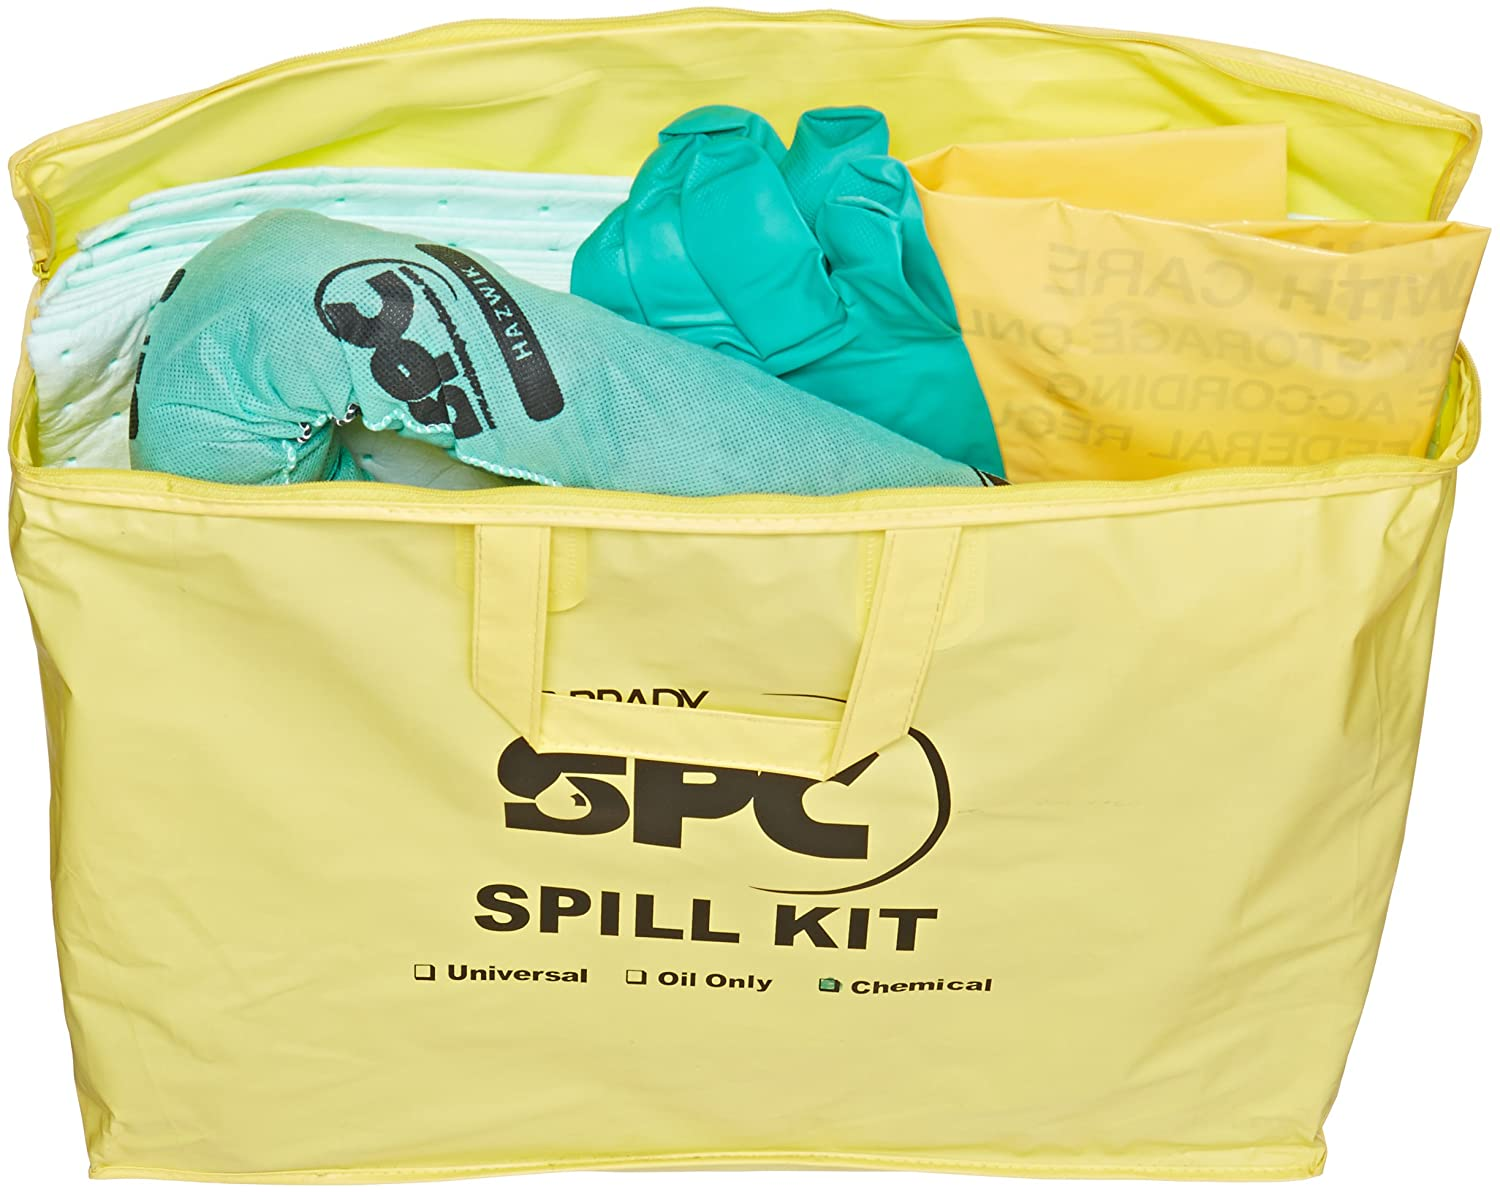 SPC SKH-PP Hazwik Chemical Class Portable Economy Spill Kit: Science Lab Spill Containment Supplies: Industrial & Scientific